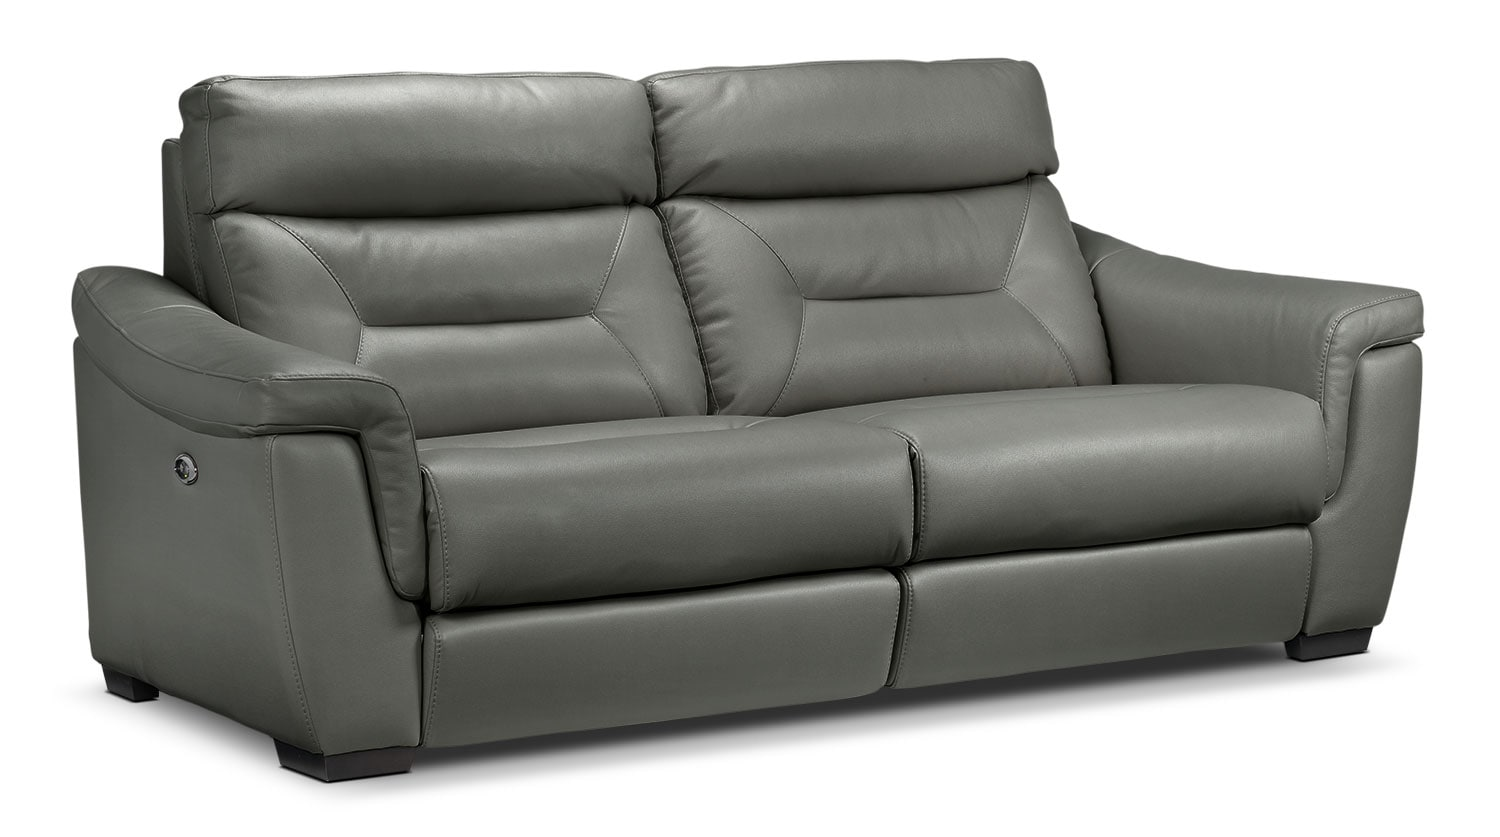 dalton sofa leon s leathercraft prices home the honoroak